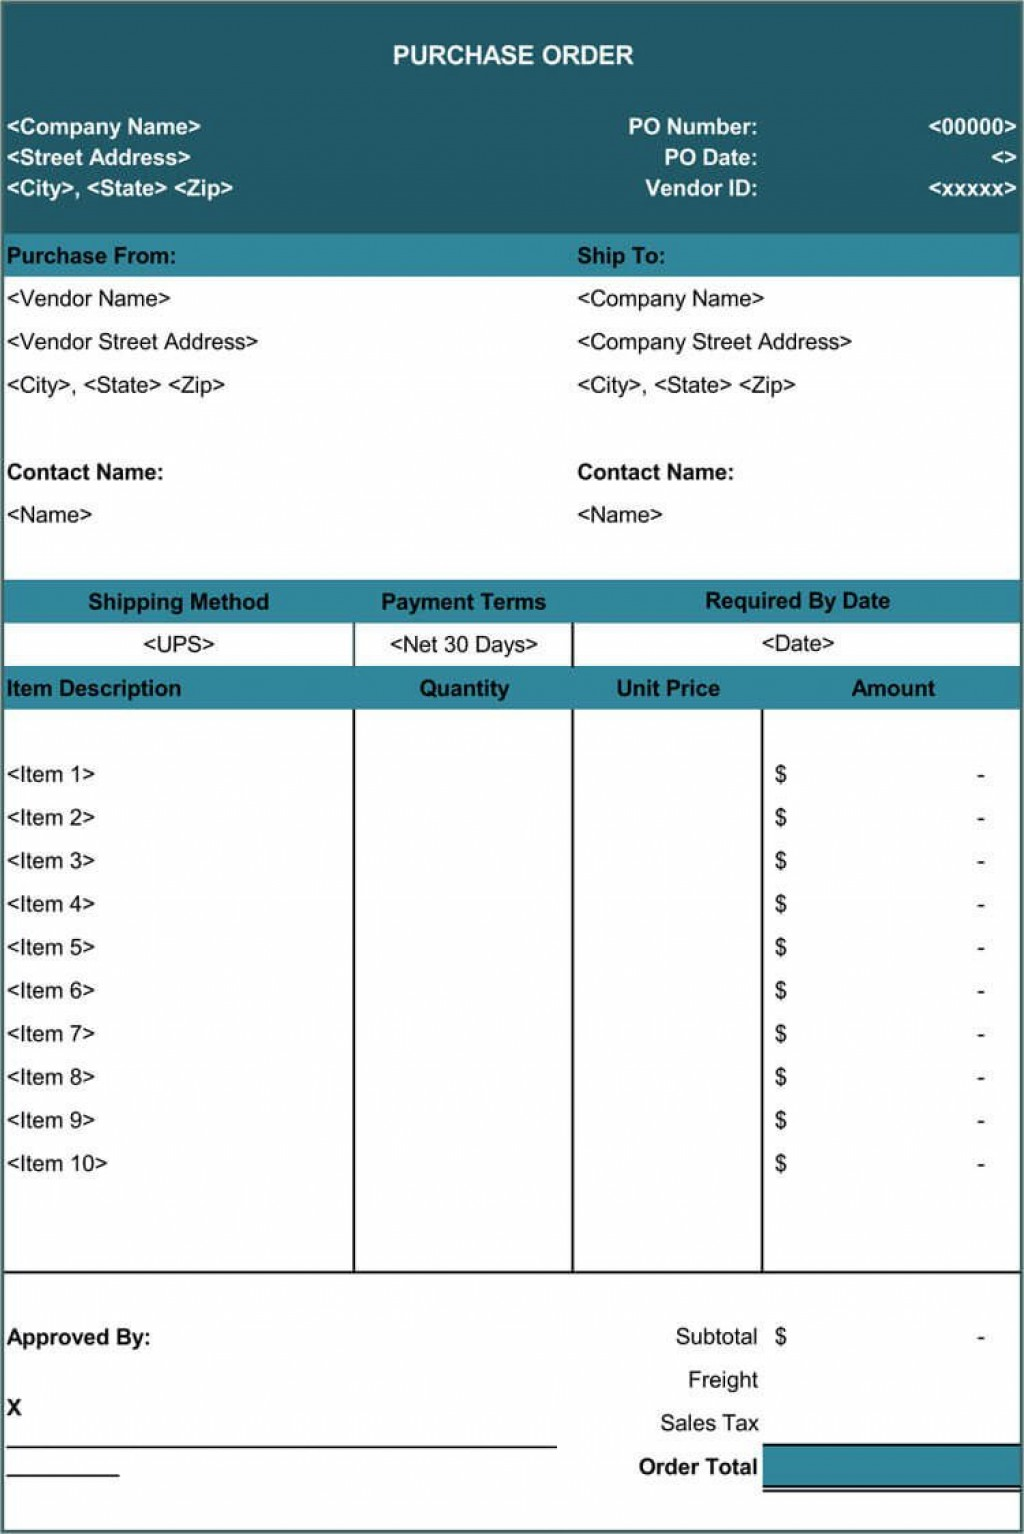 009 Top Purchase Order Template Free Image  Log M Acces BlanketLarge